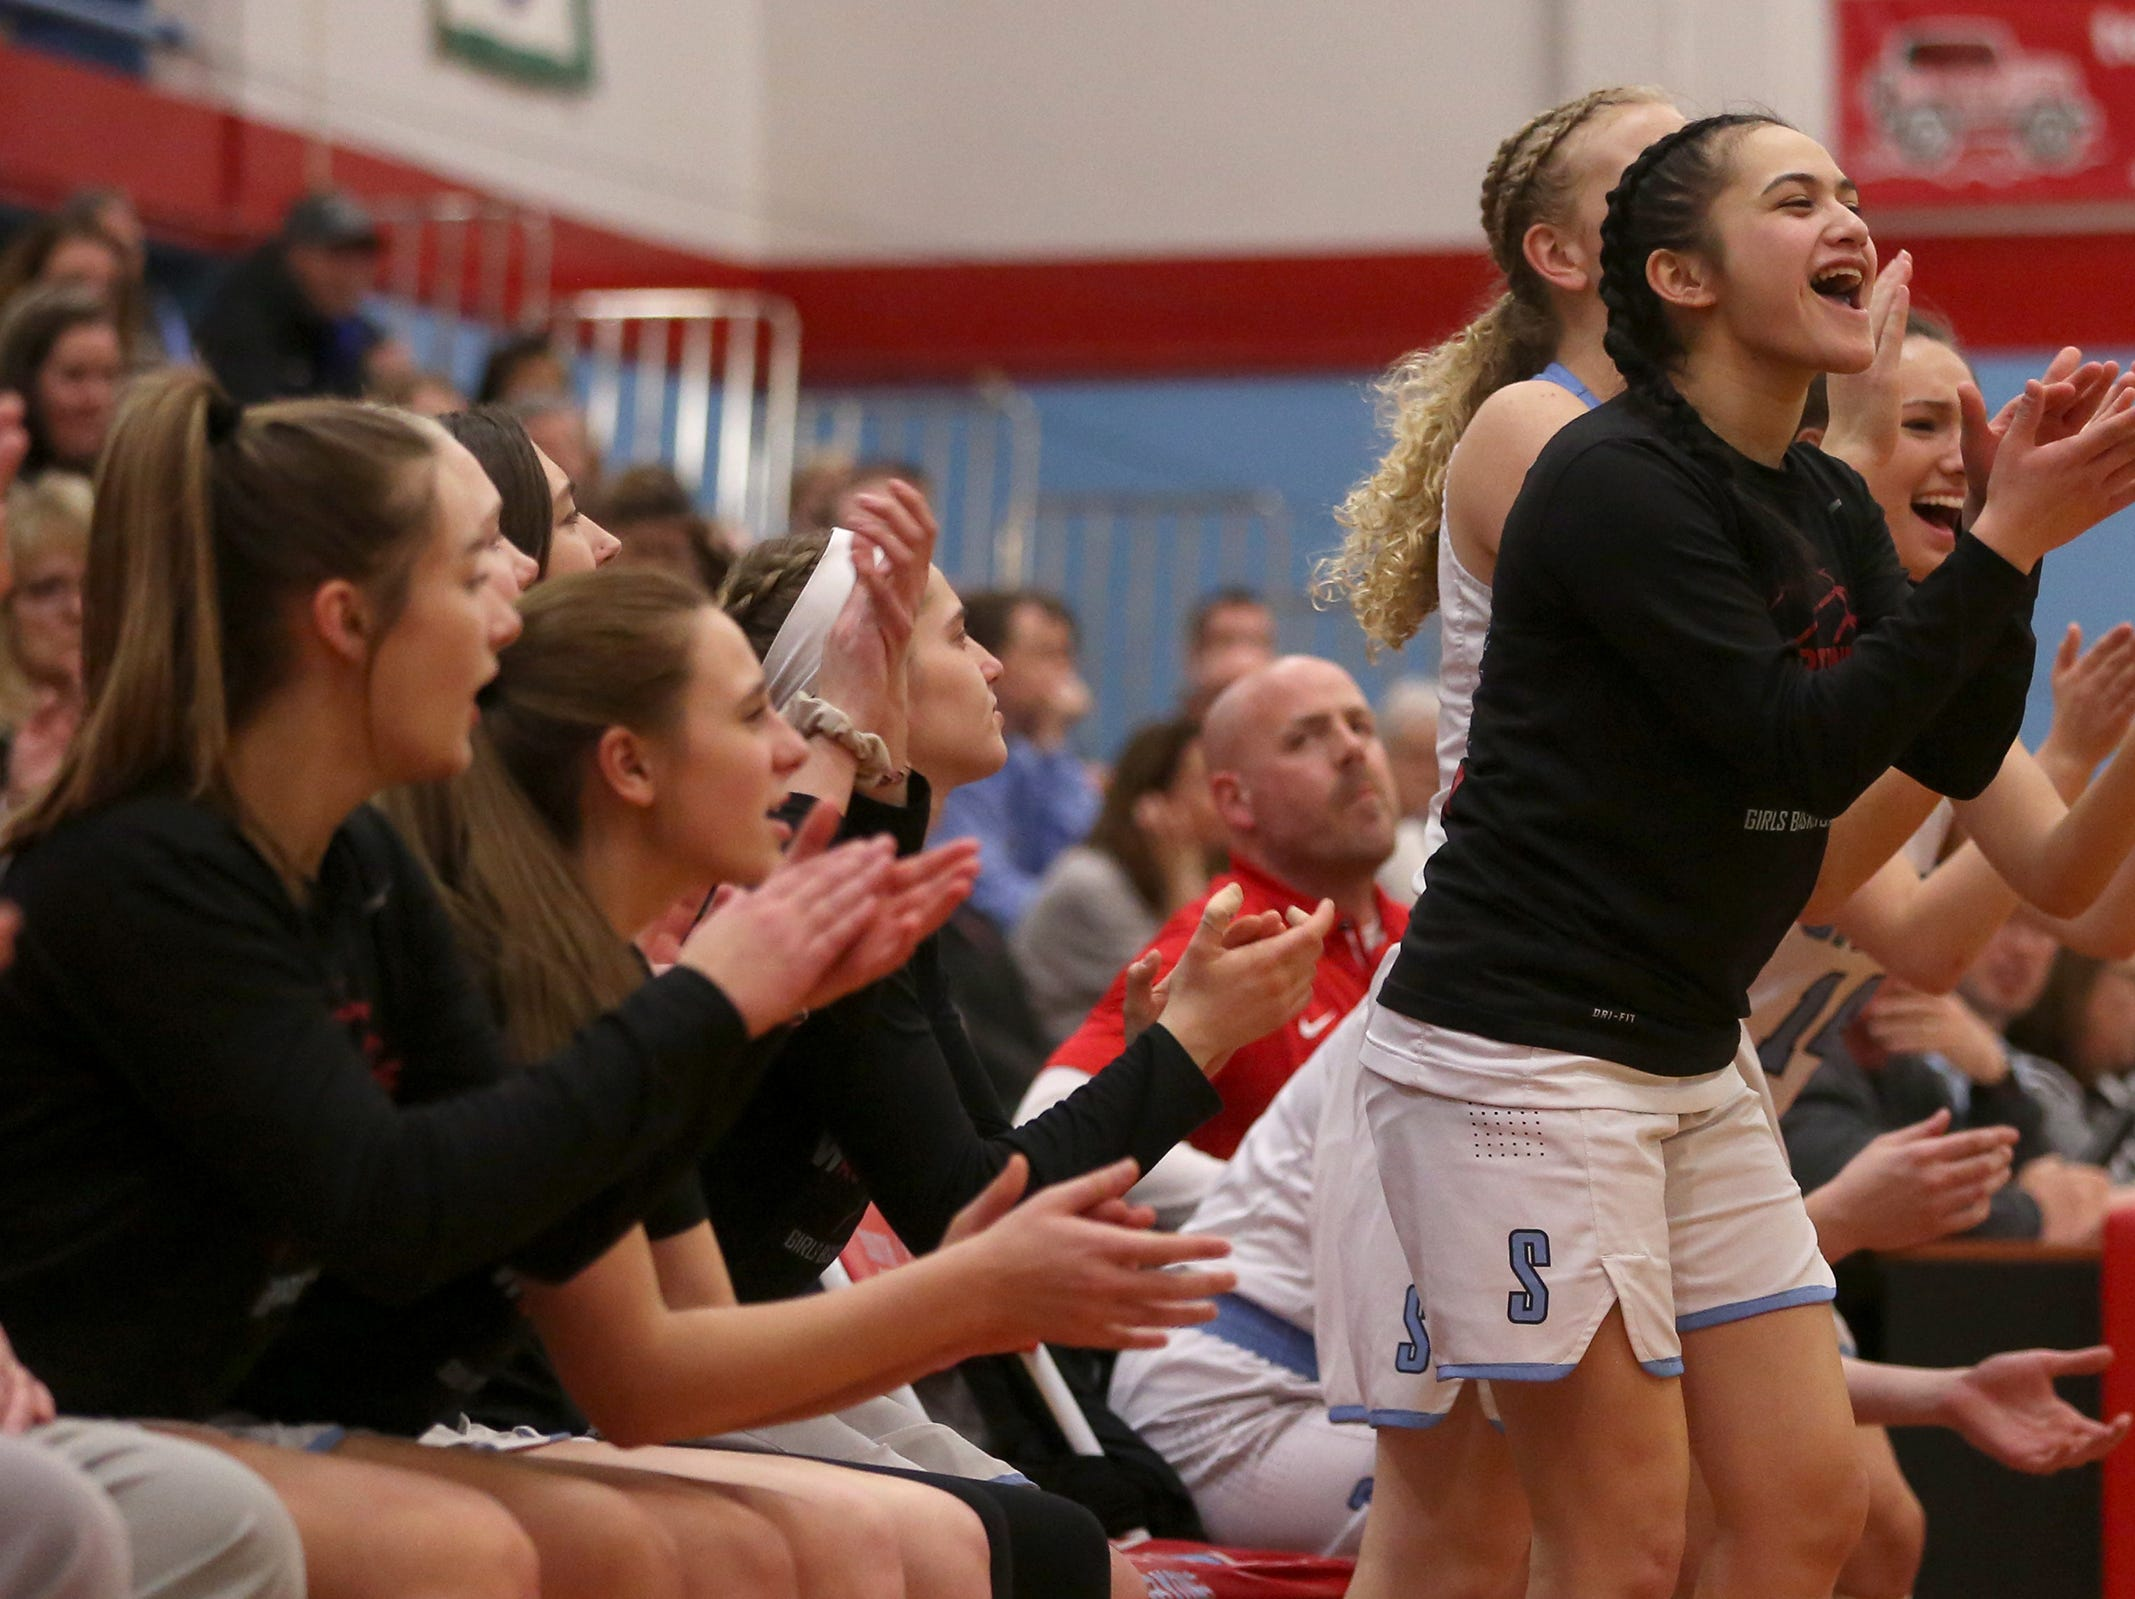 South Salem's bench cheers on their team during the South Salem vs. Mountainside girls basketball OSAA playoff game in Salem on Thursday, Feb. 28, 2019.